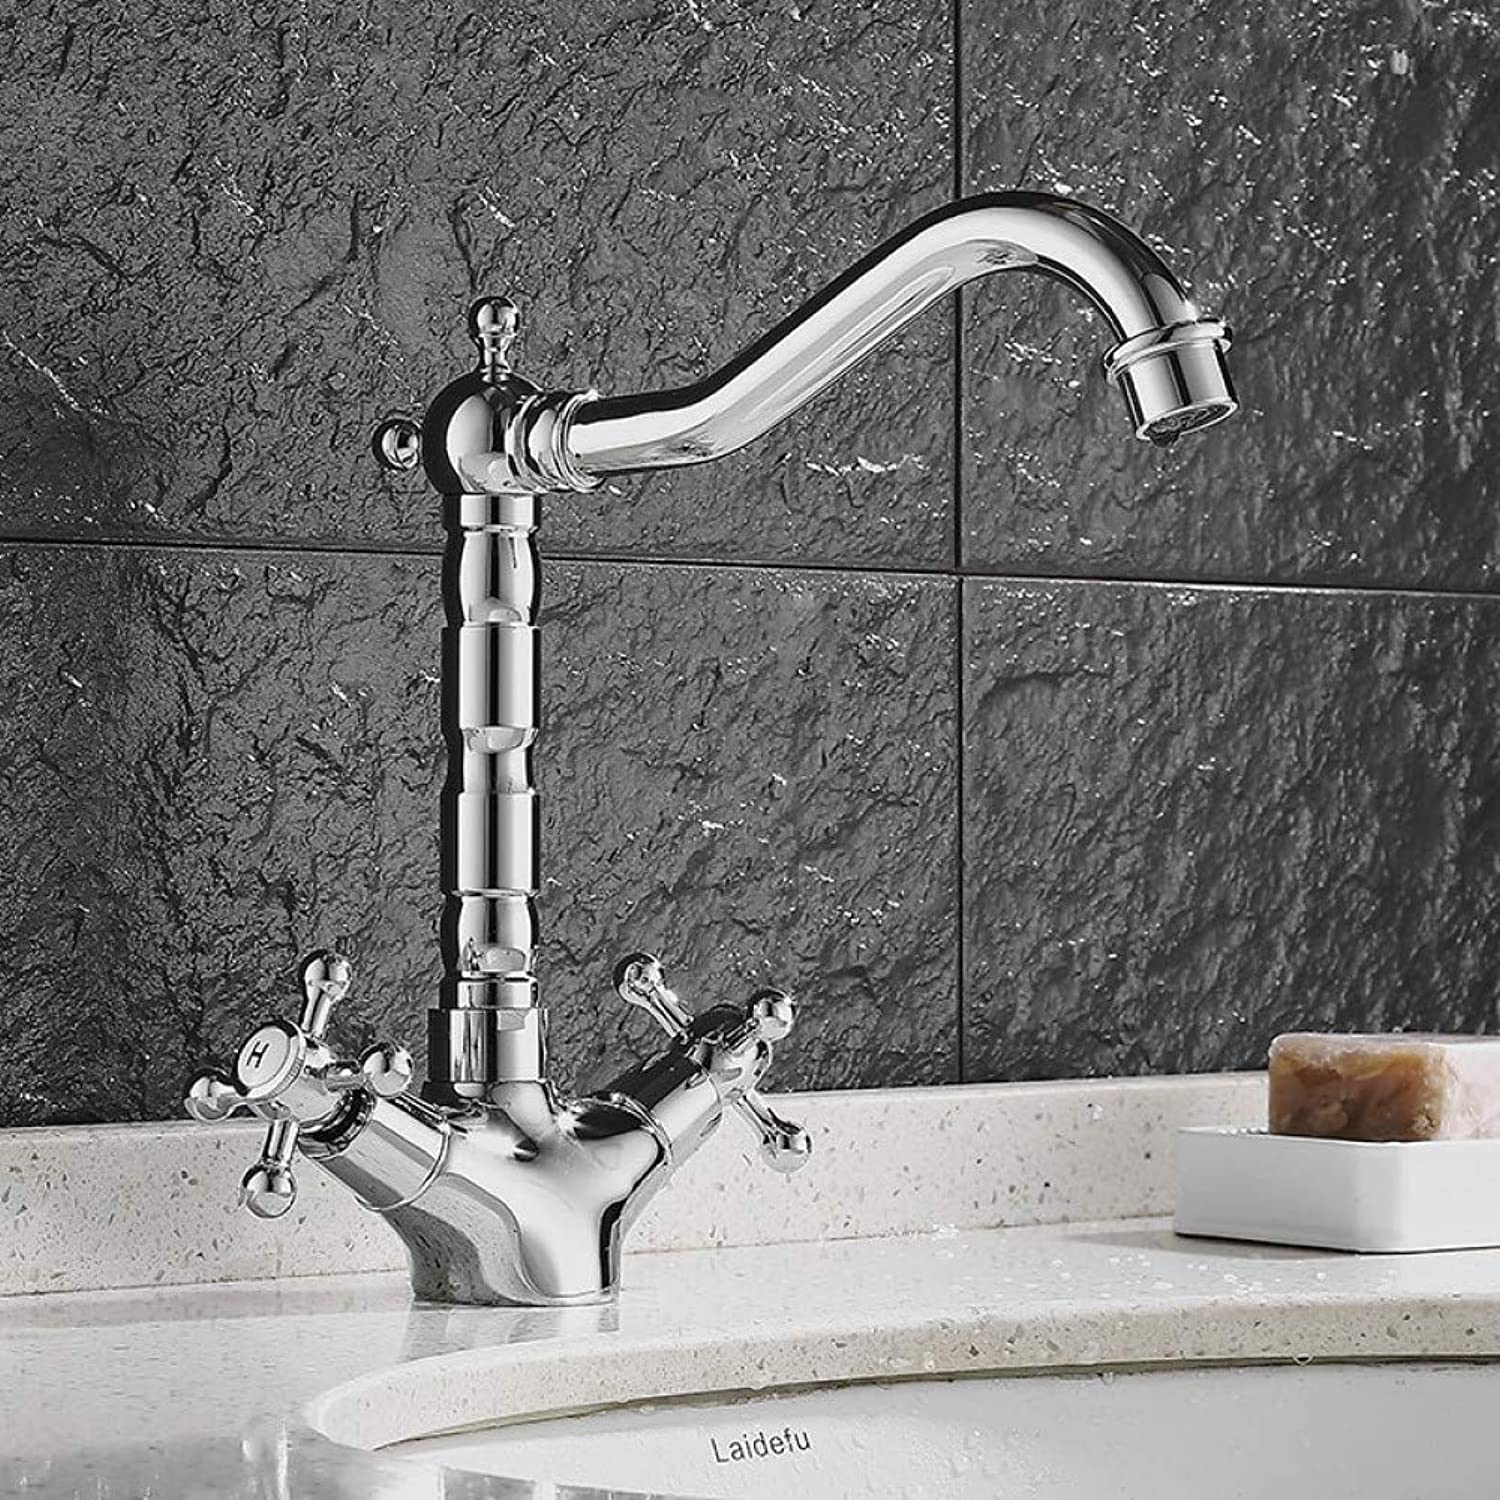 YHSGY Bathroom Sink Taps Fashion Simple Hot and Cold Water Basin Faucet Wash Basin Faucet